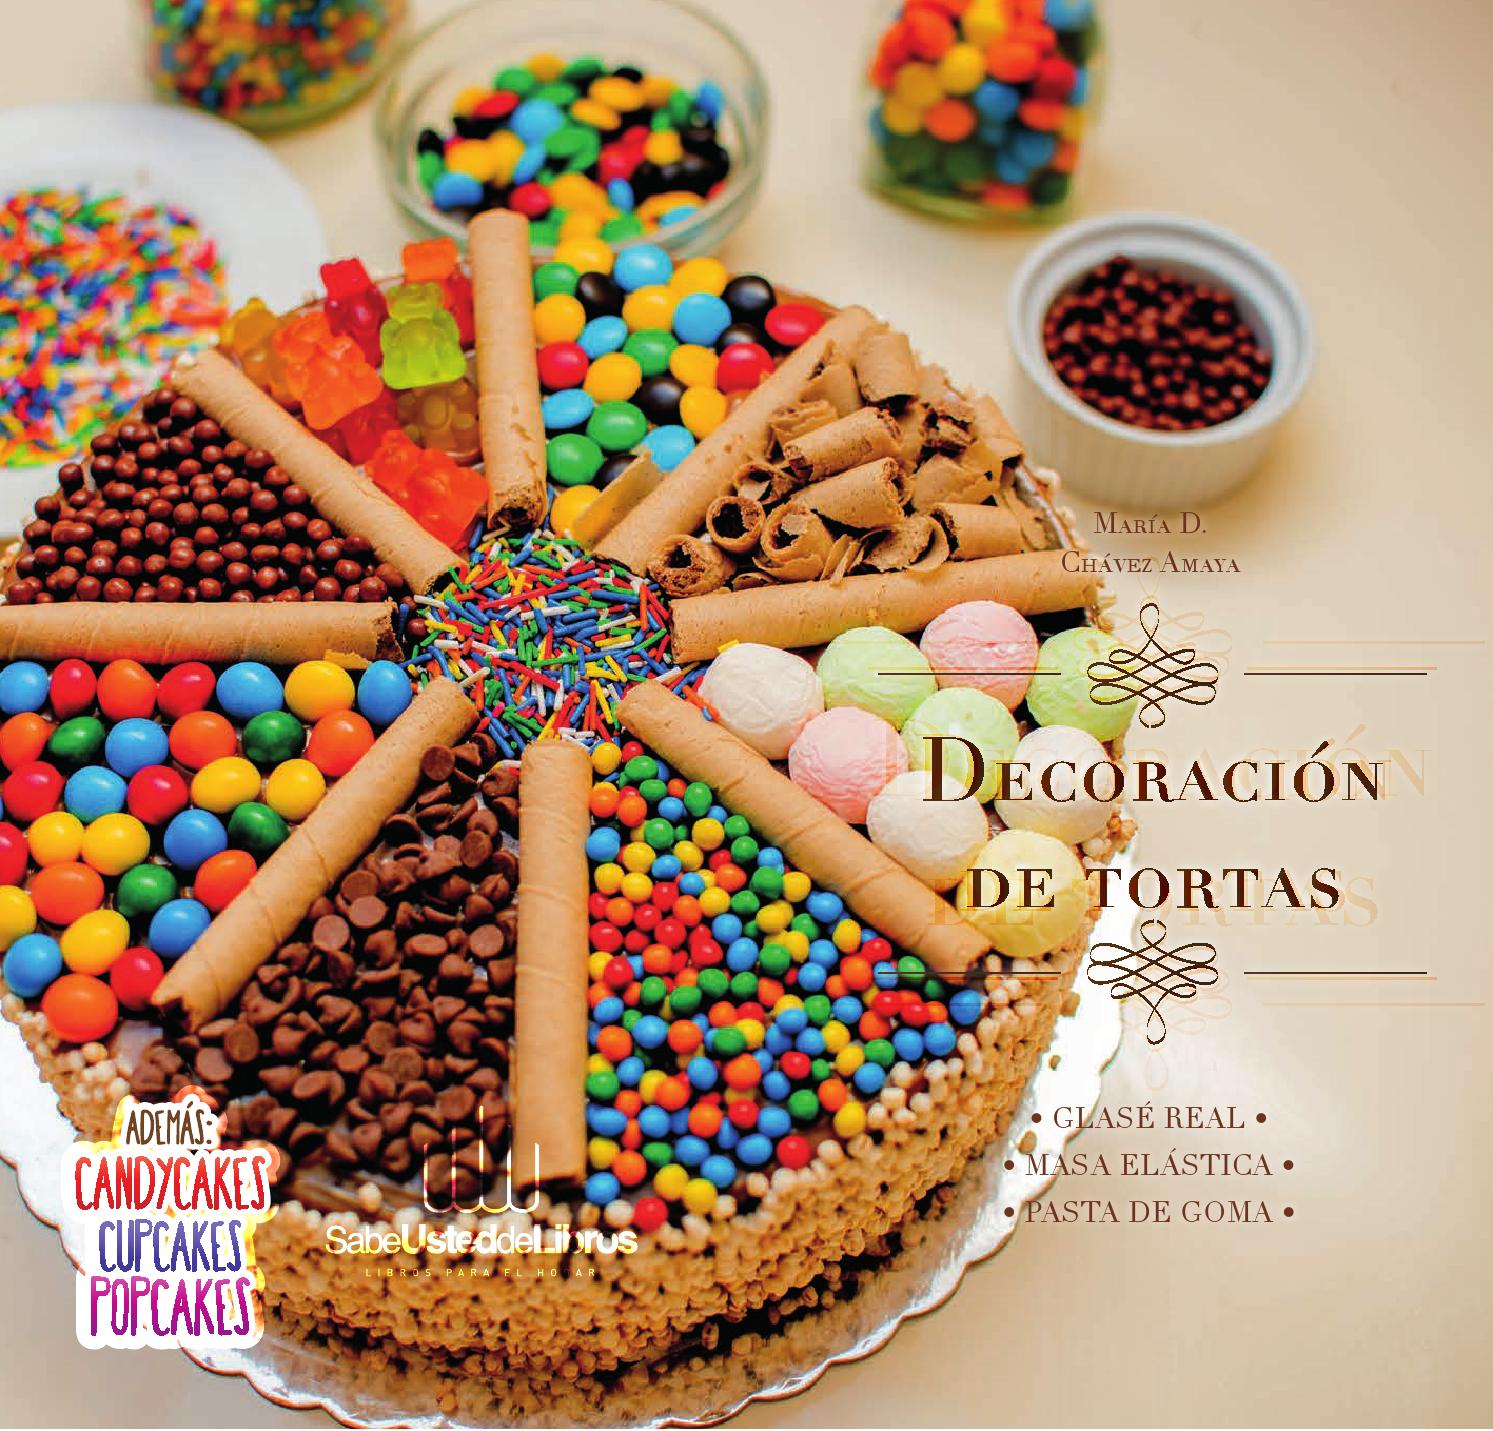 Decoracion De Tortas By Sabe Usted De Libros Issuu - Decoracion-de-tortas-infantiles